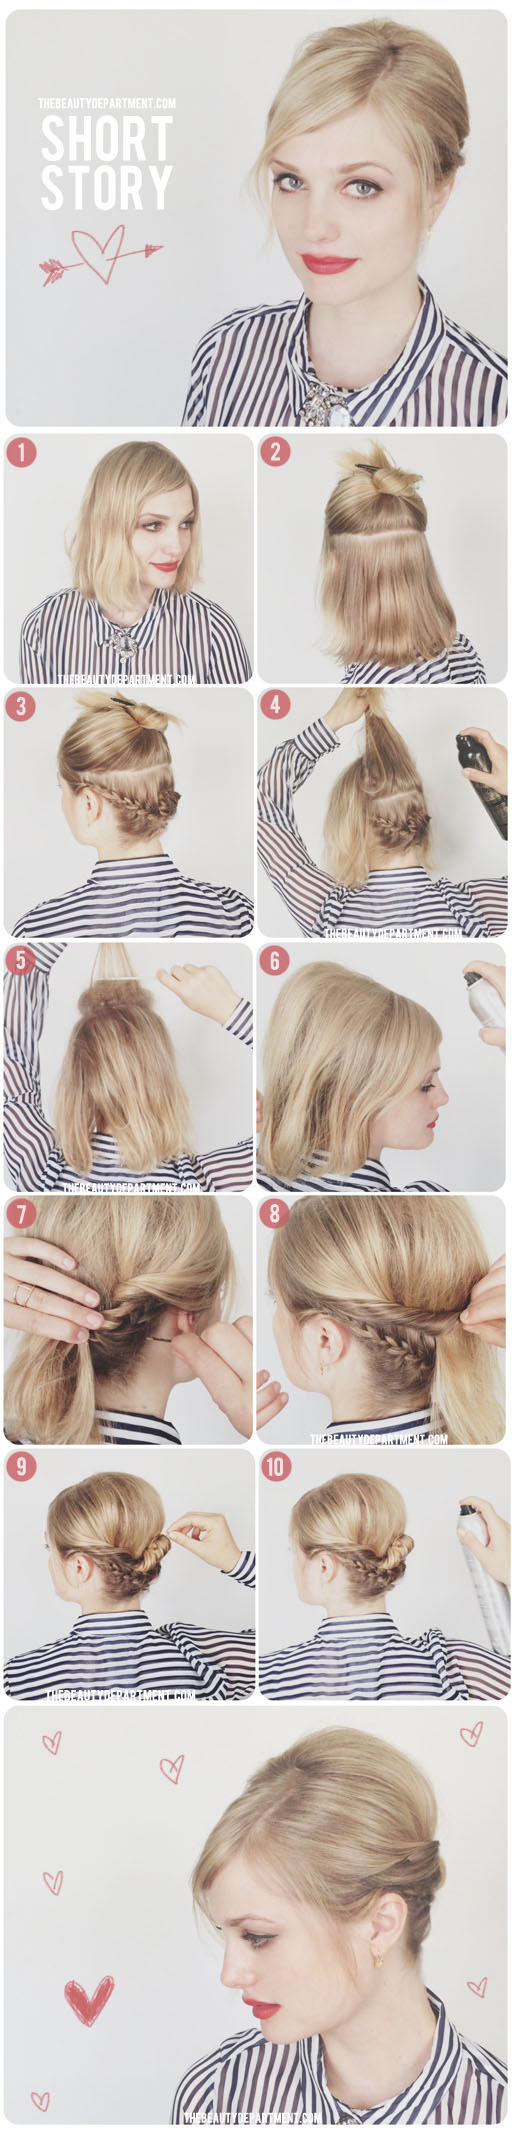 Girls with medium-length bobs can do cute braided updos, too.